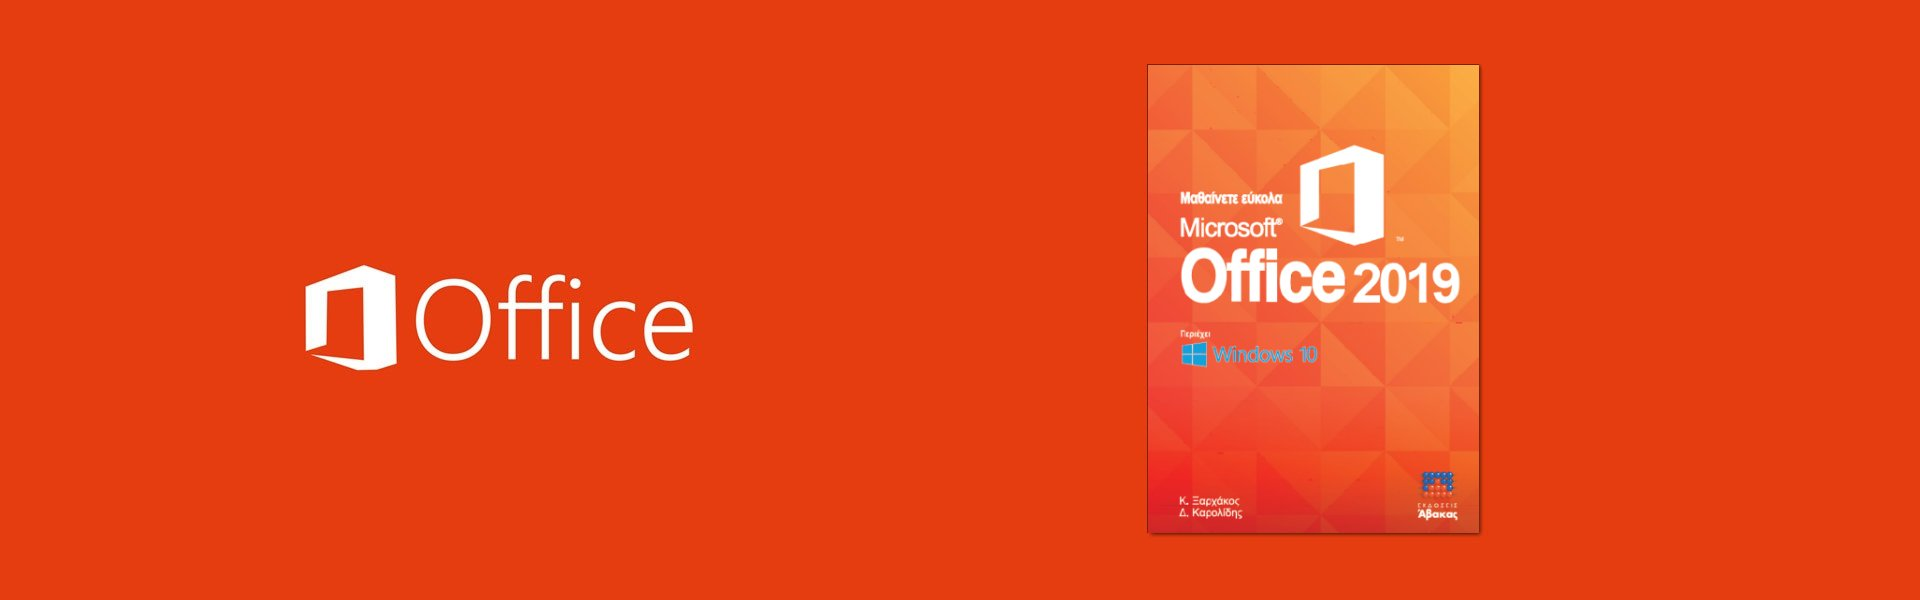 Easy learning Microsoft Office 2019